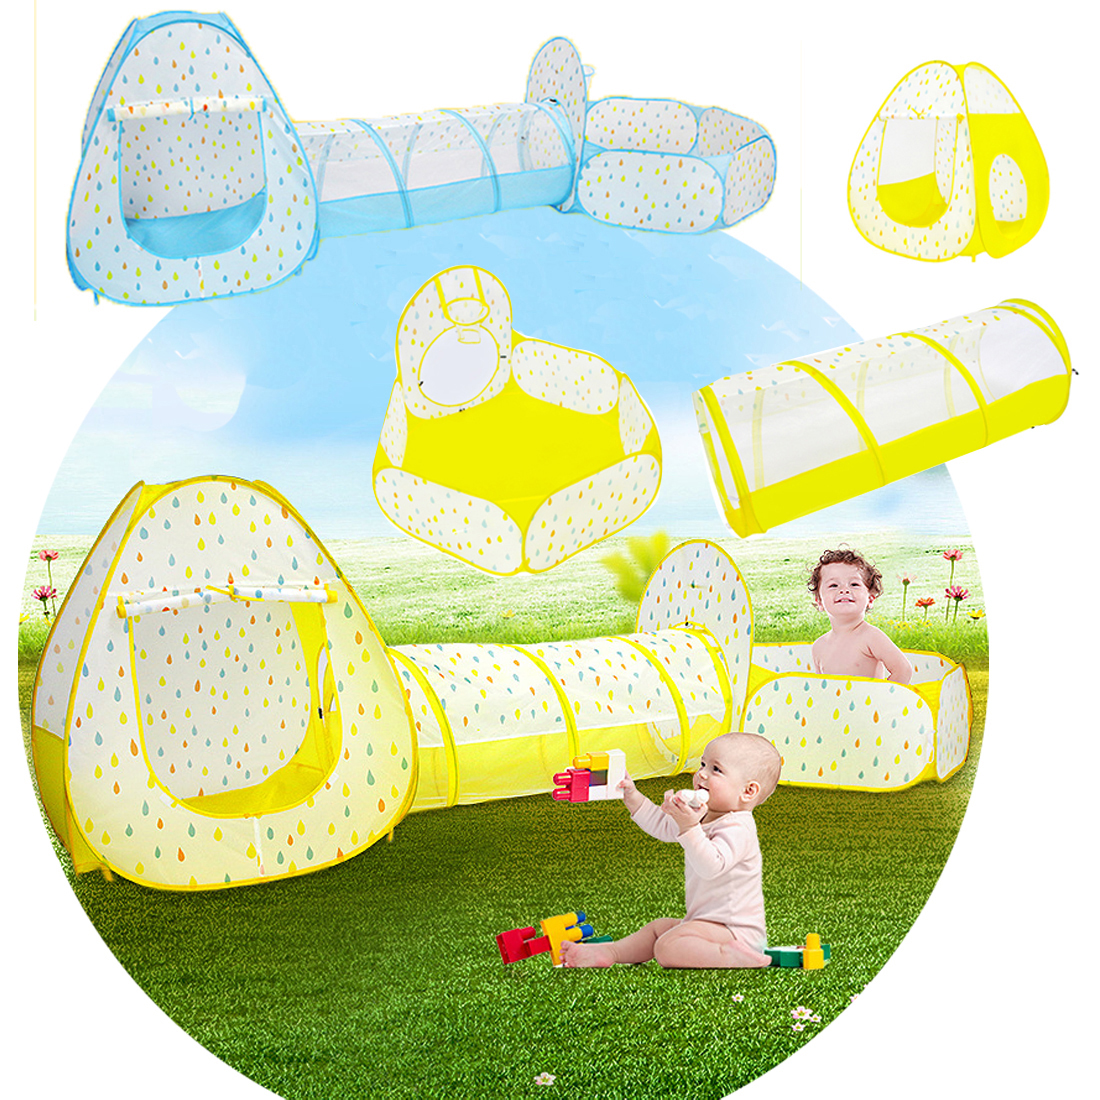 3 in 1 Kids Raindrop Toy Tent With Ball Pool Crawling Tunnel Teepee Children Folding Play Tent Baby Breathable Game House